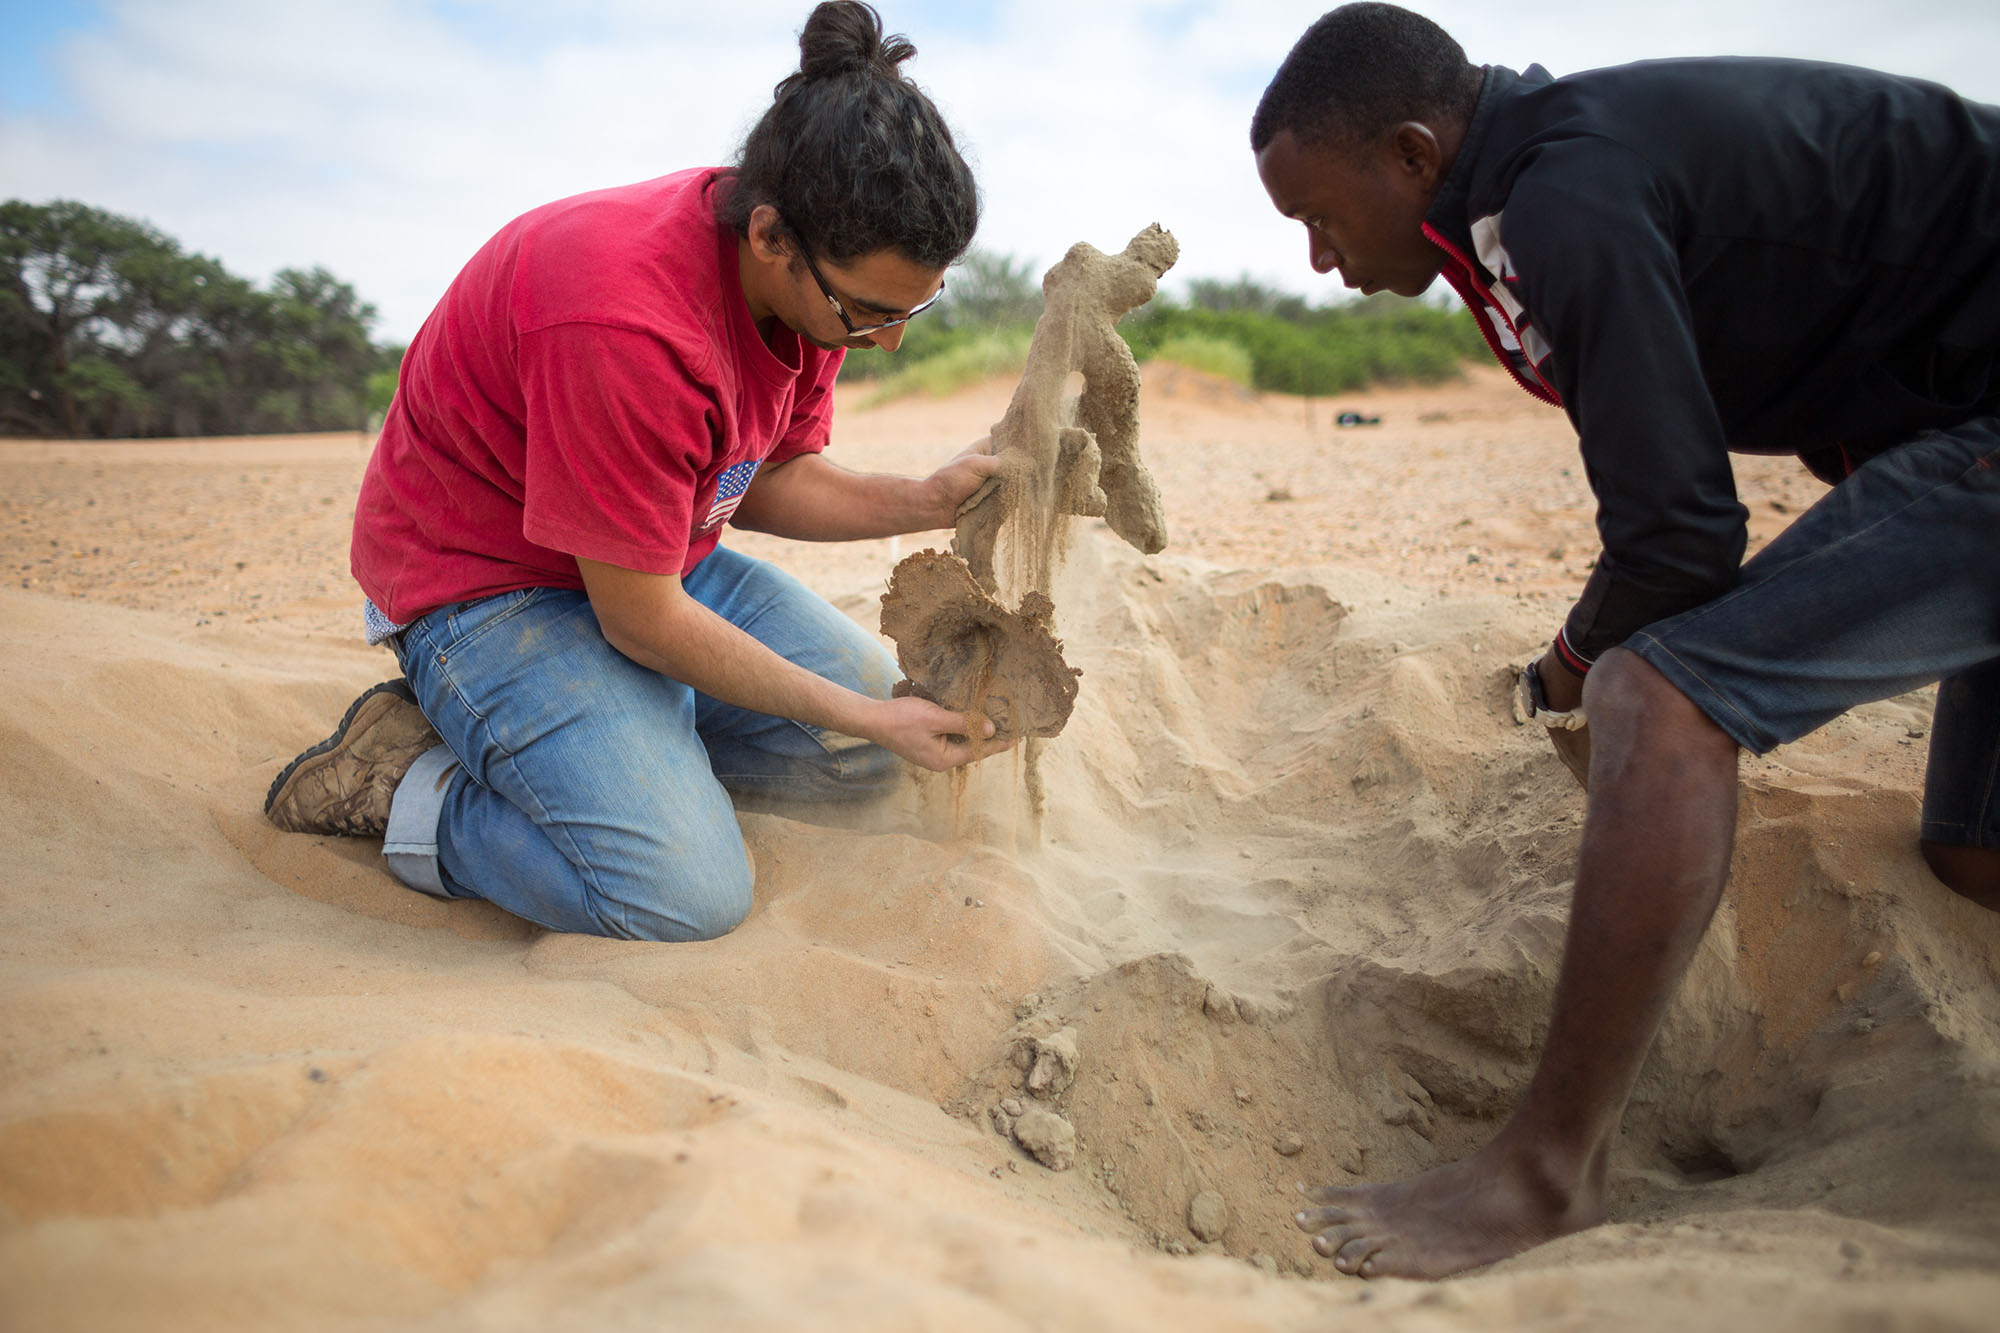 Above:  Researchers at Gobabeb extract an unoccupied scorpion burrow from the sand. The burrow structure had hardened due to the drying of resin.